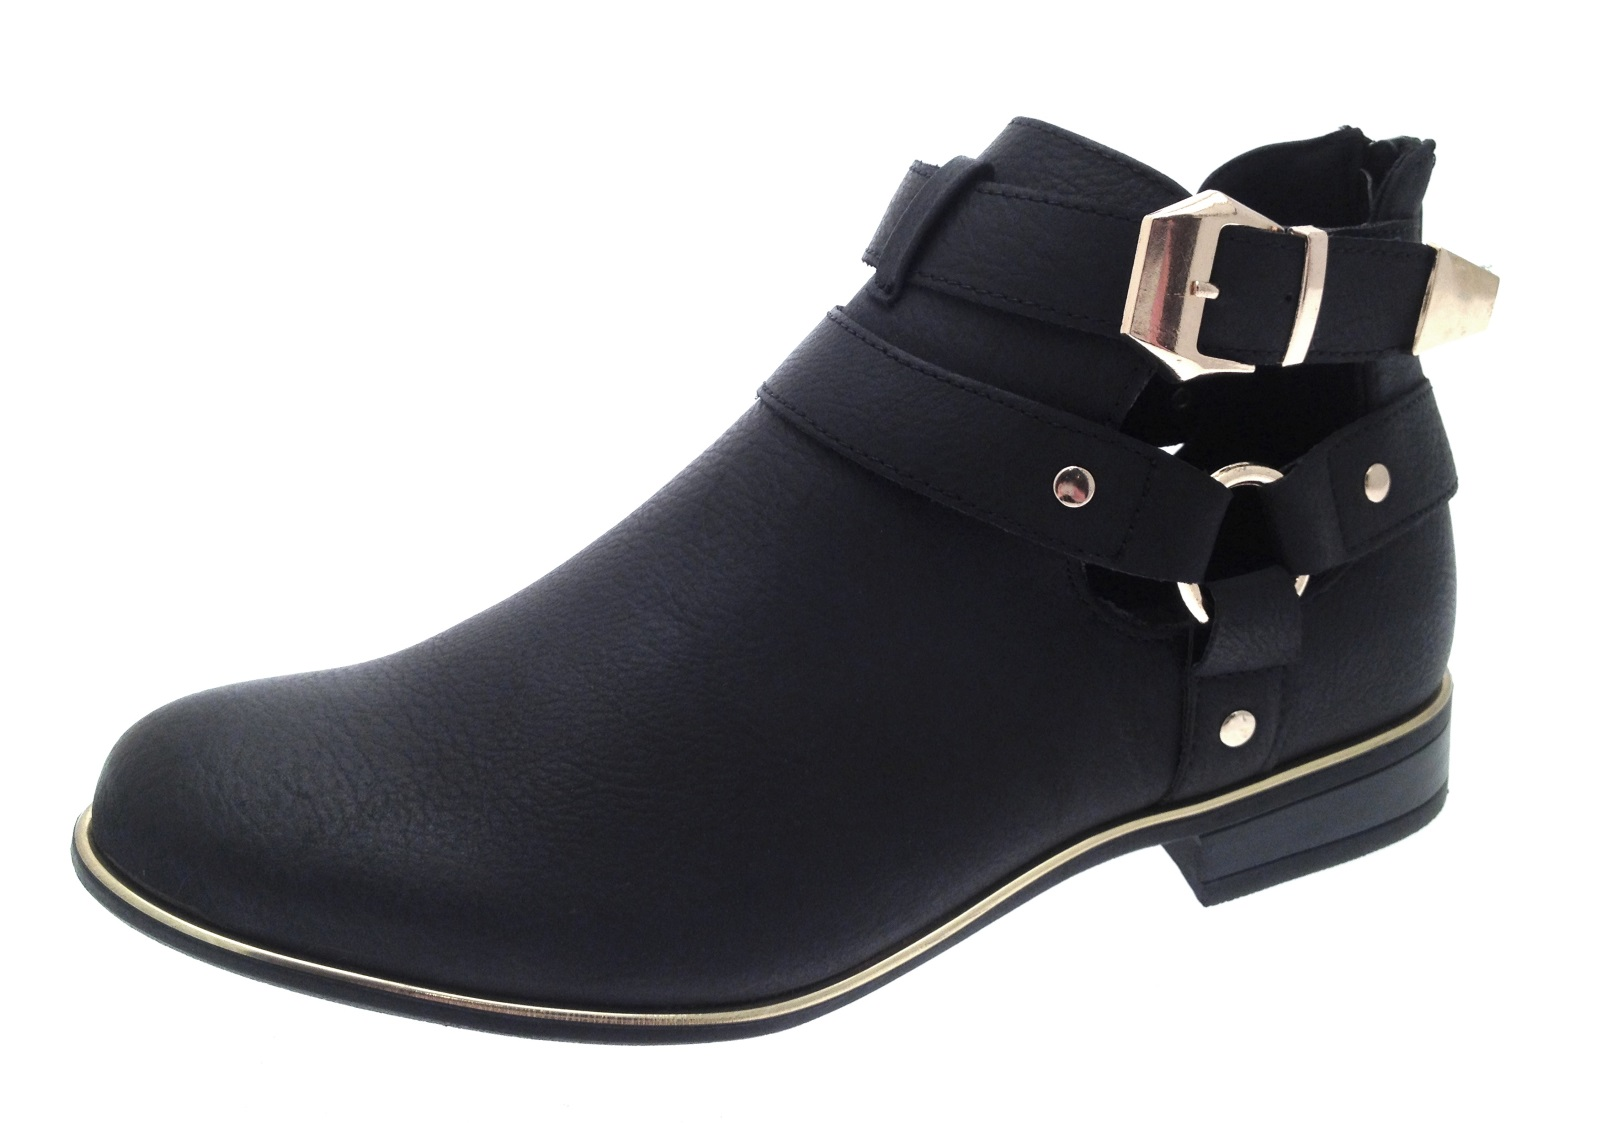 Womens Flat Heel Cut Out Ankle Boots Gold Trim Faux Leather Buckle ...